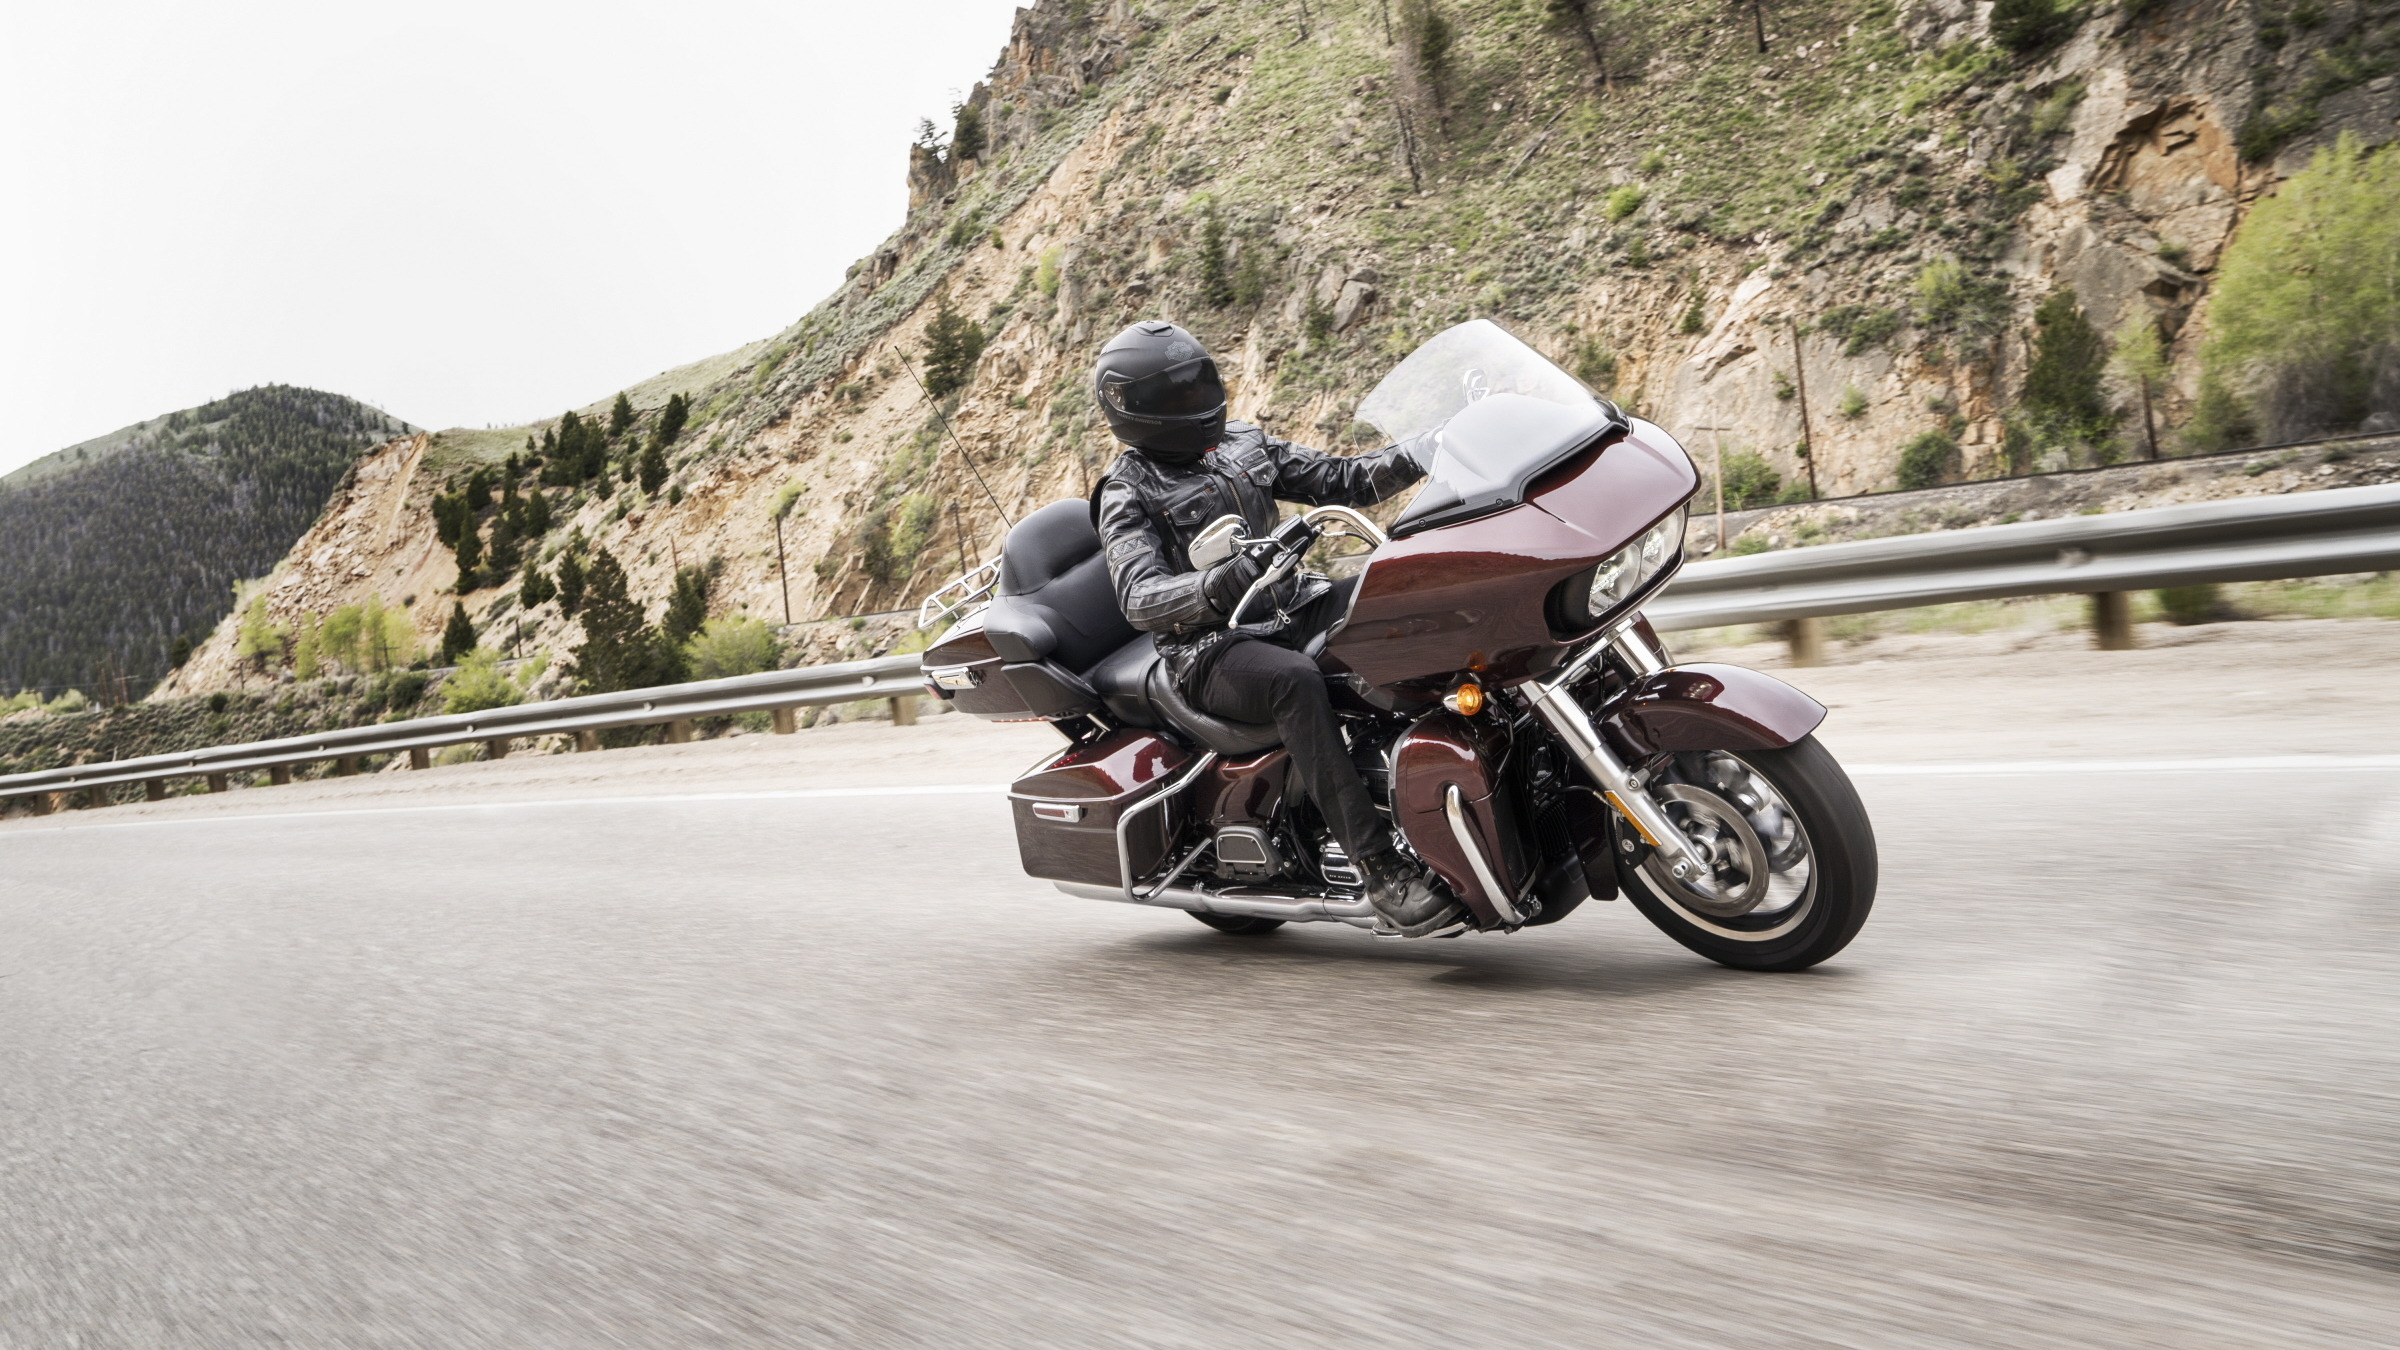 2019 Harley Davidson Road Glide Ultra Top Speed